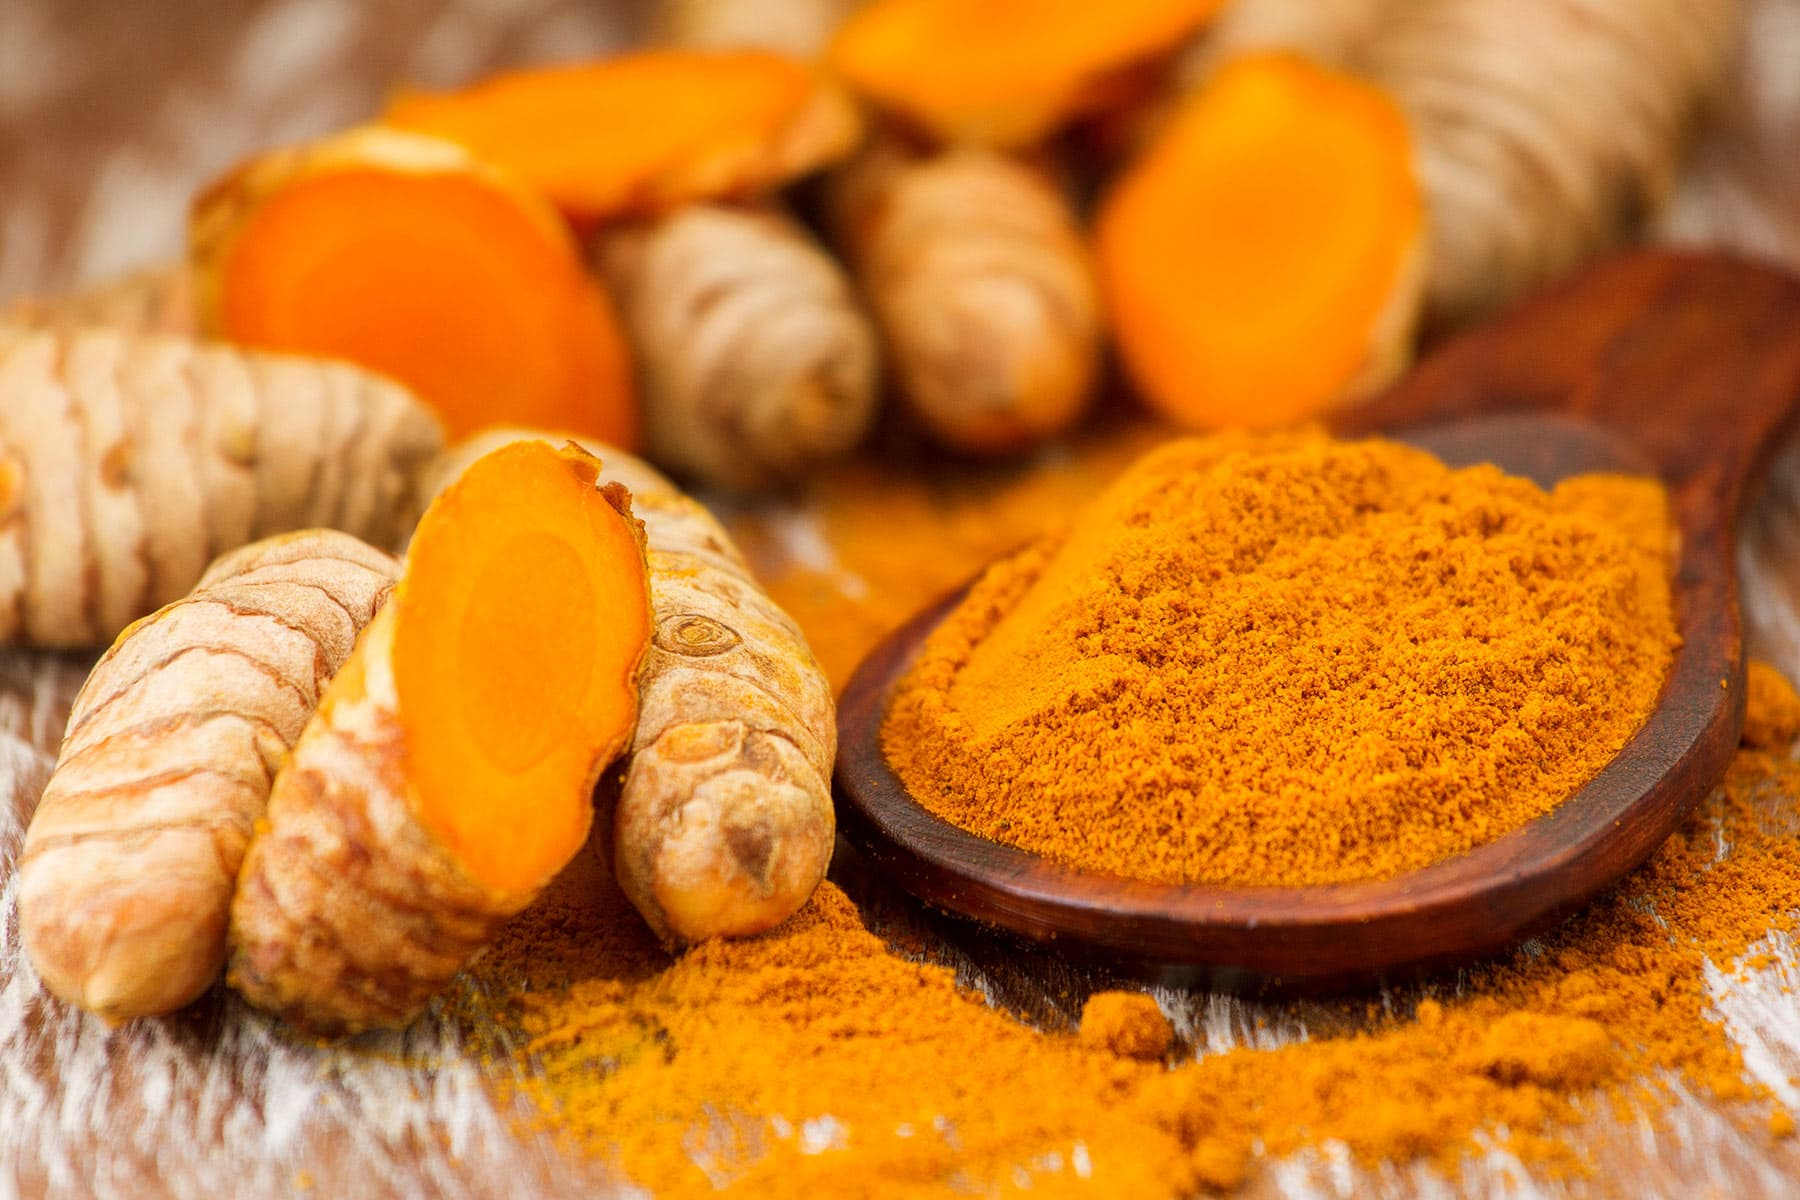 Turmeric and Curcumin: Health, Spice, and Supplement Information From WebMD